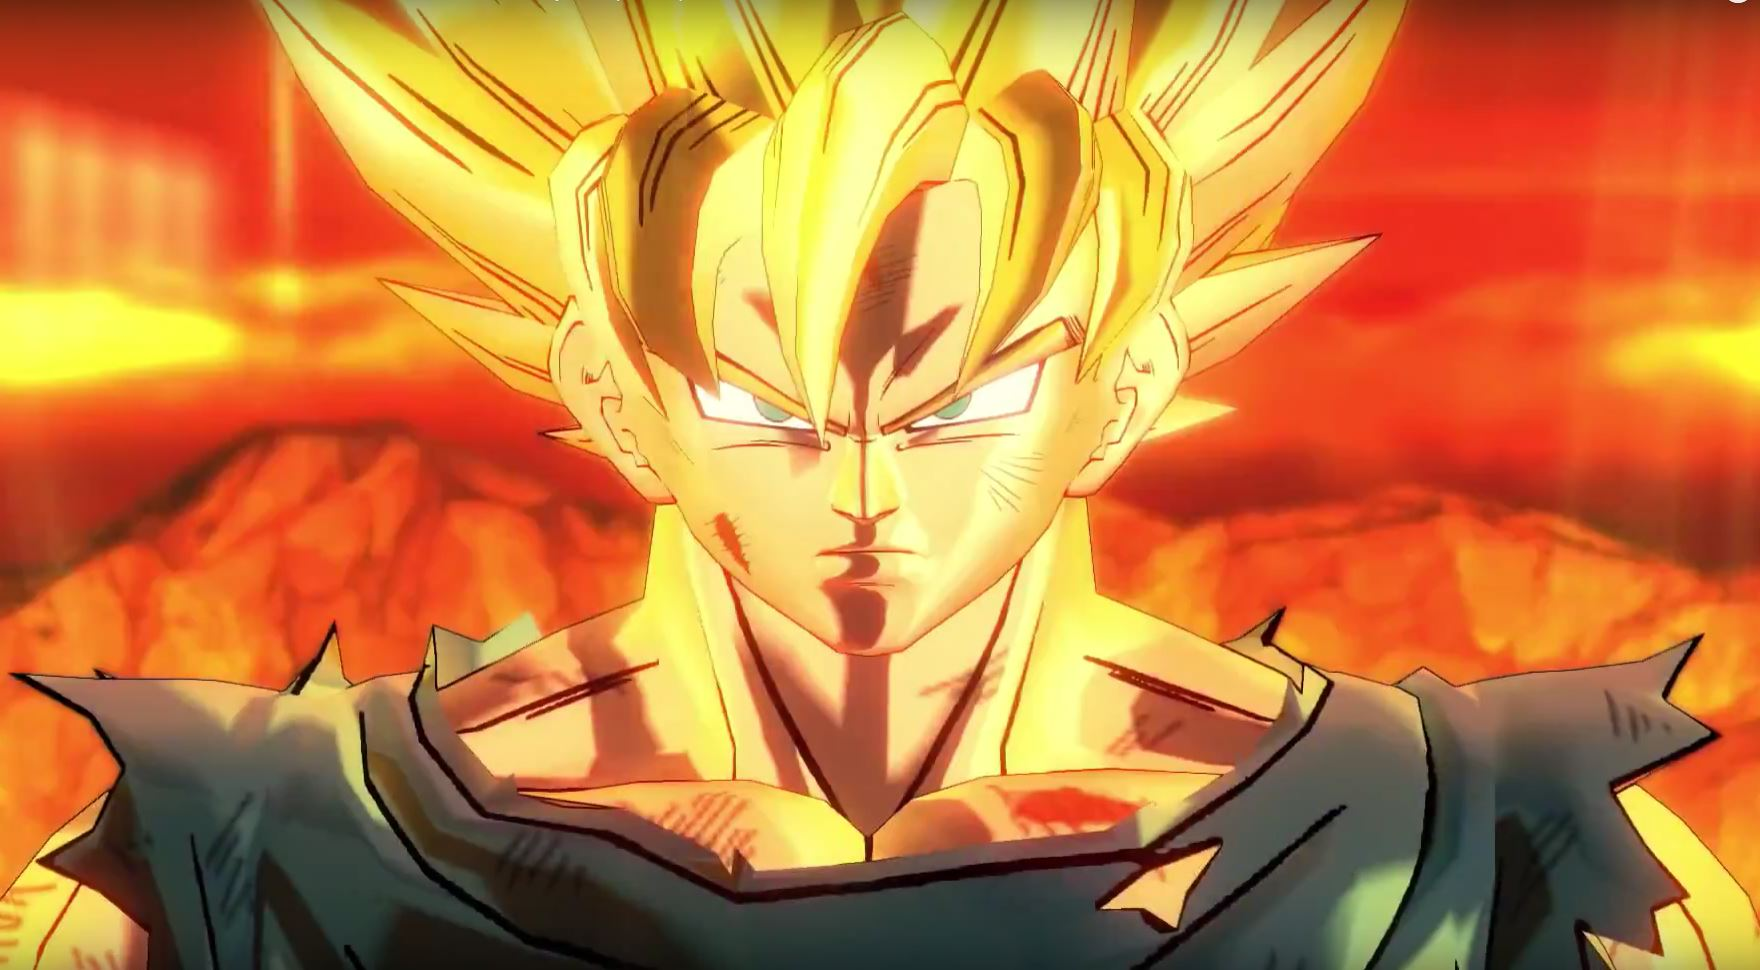 Tráiler de lanzamiento de Dragon Ball Xenoverse 2 ya disponible